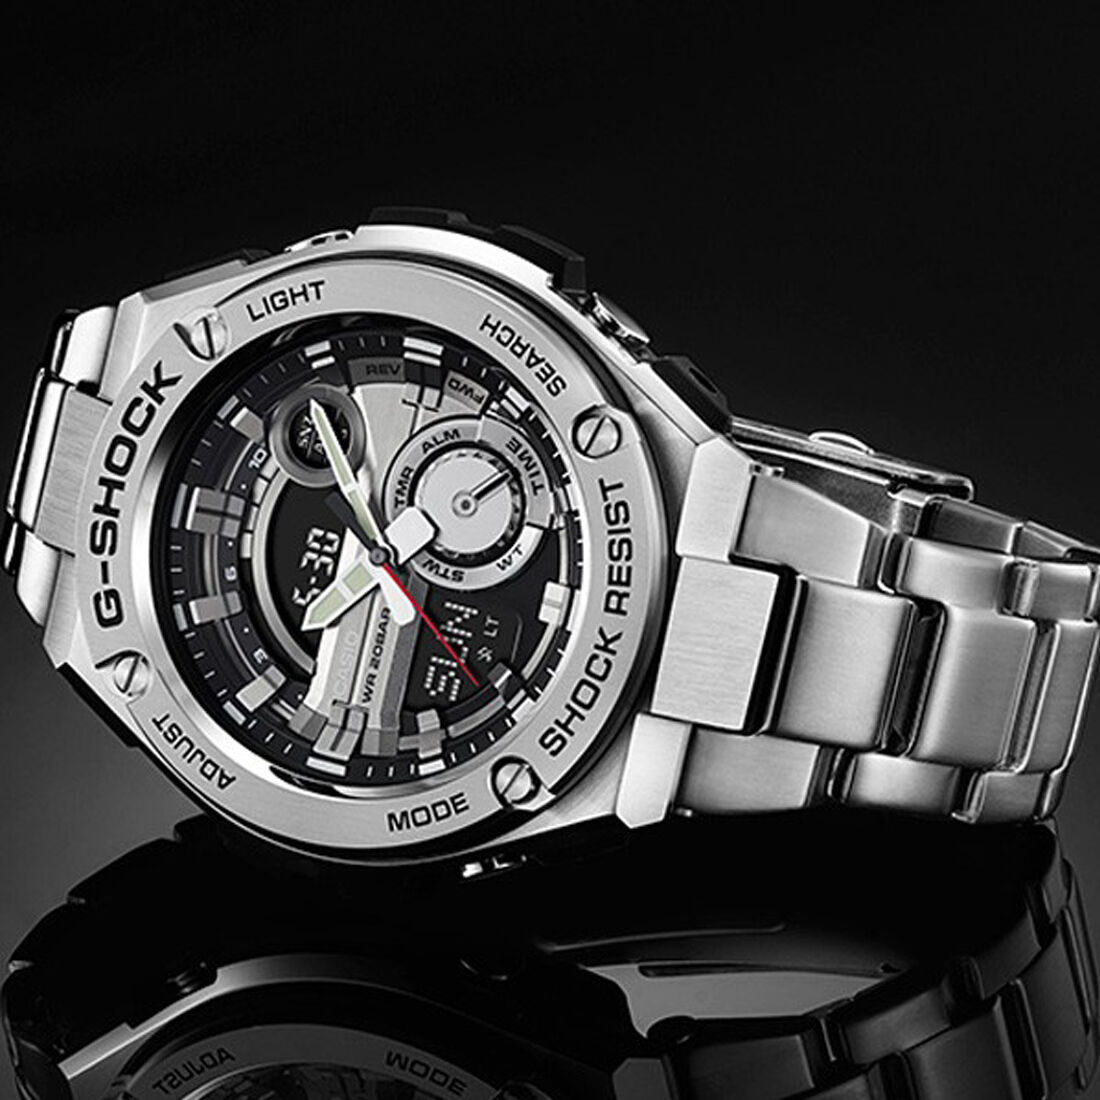 New Casio G Shock Steel Tough Solar Stainless Mens Watch Gst S120l 1b 1 Of 2only 2 Available